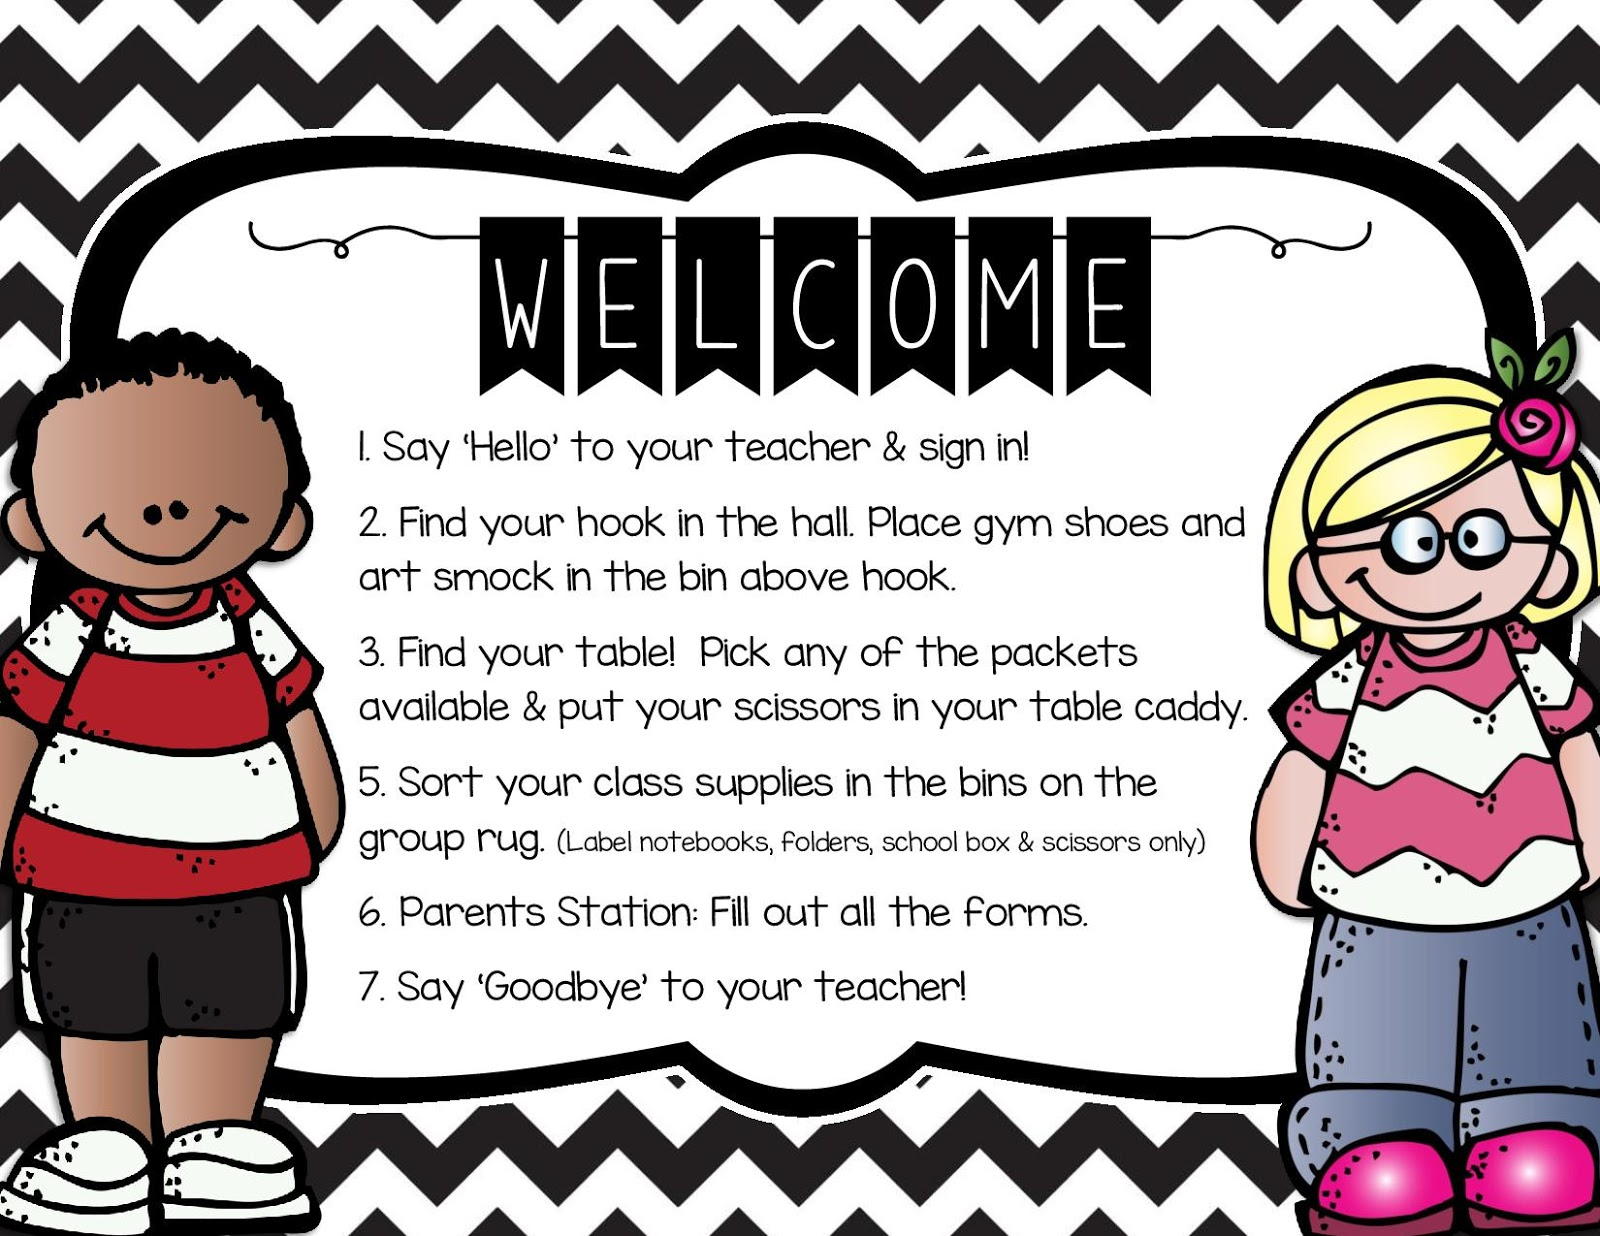 http://www.teacherspayteachers.com/Product/Meet-the-Teacher-1419040